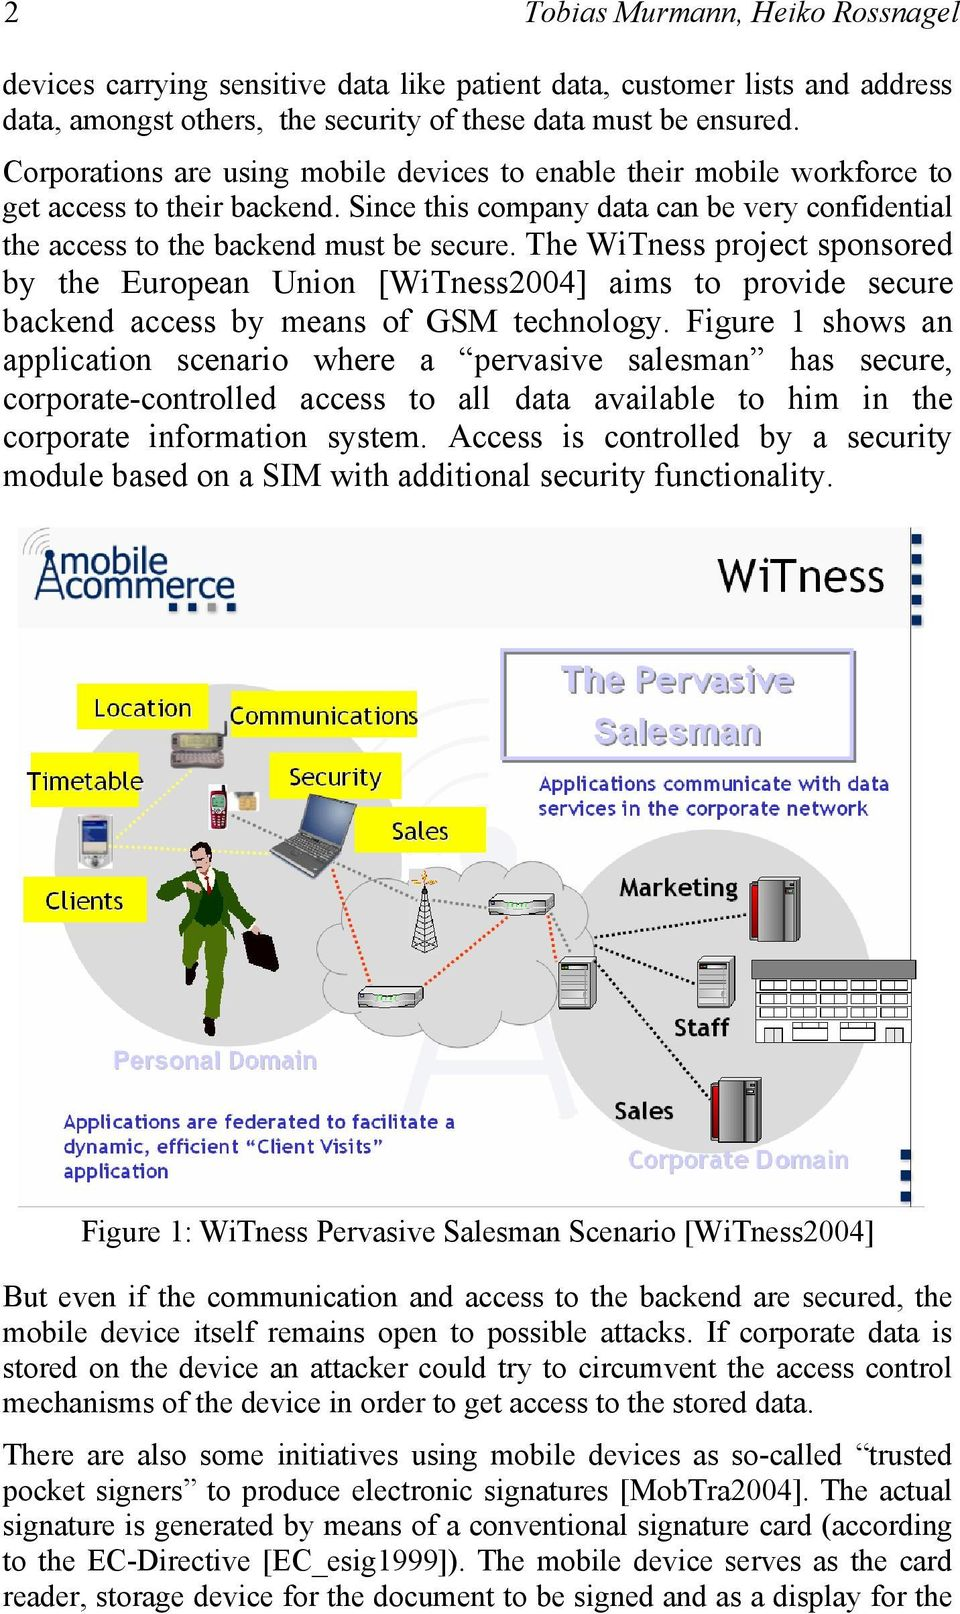 The WiTness project sponsored by the European Union [WiTness2004] aims to provide secure backend access by means of GSM technology.